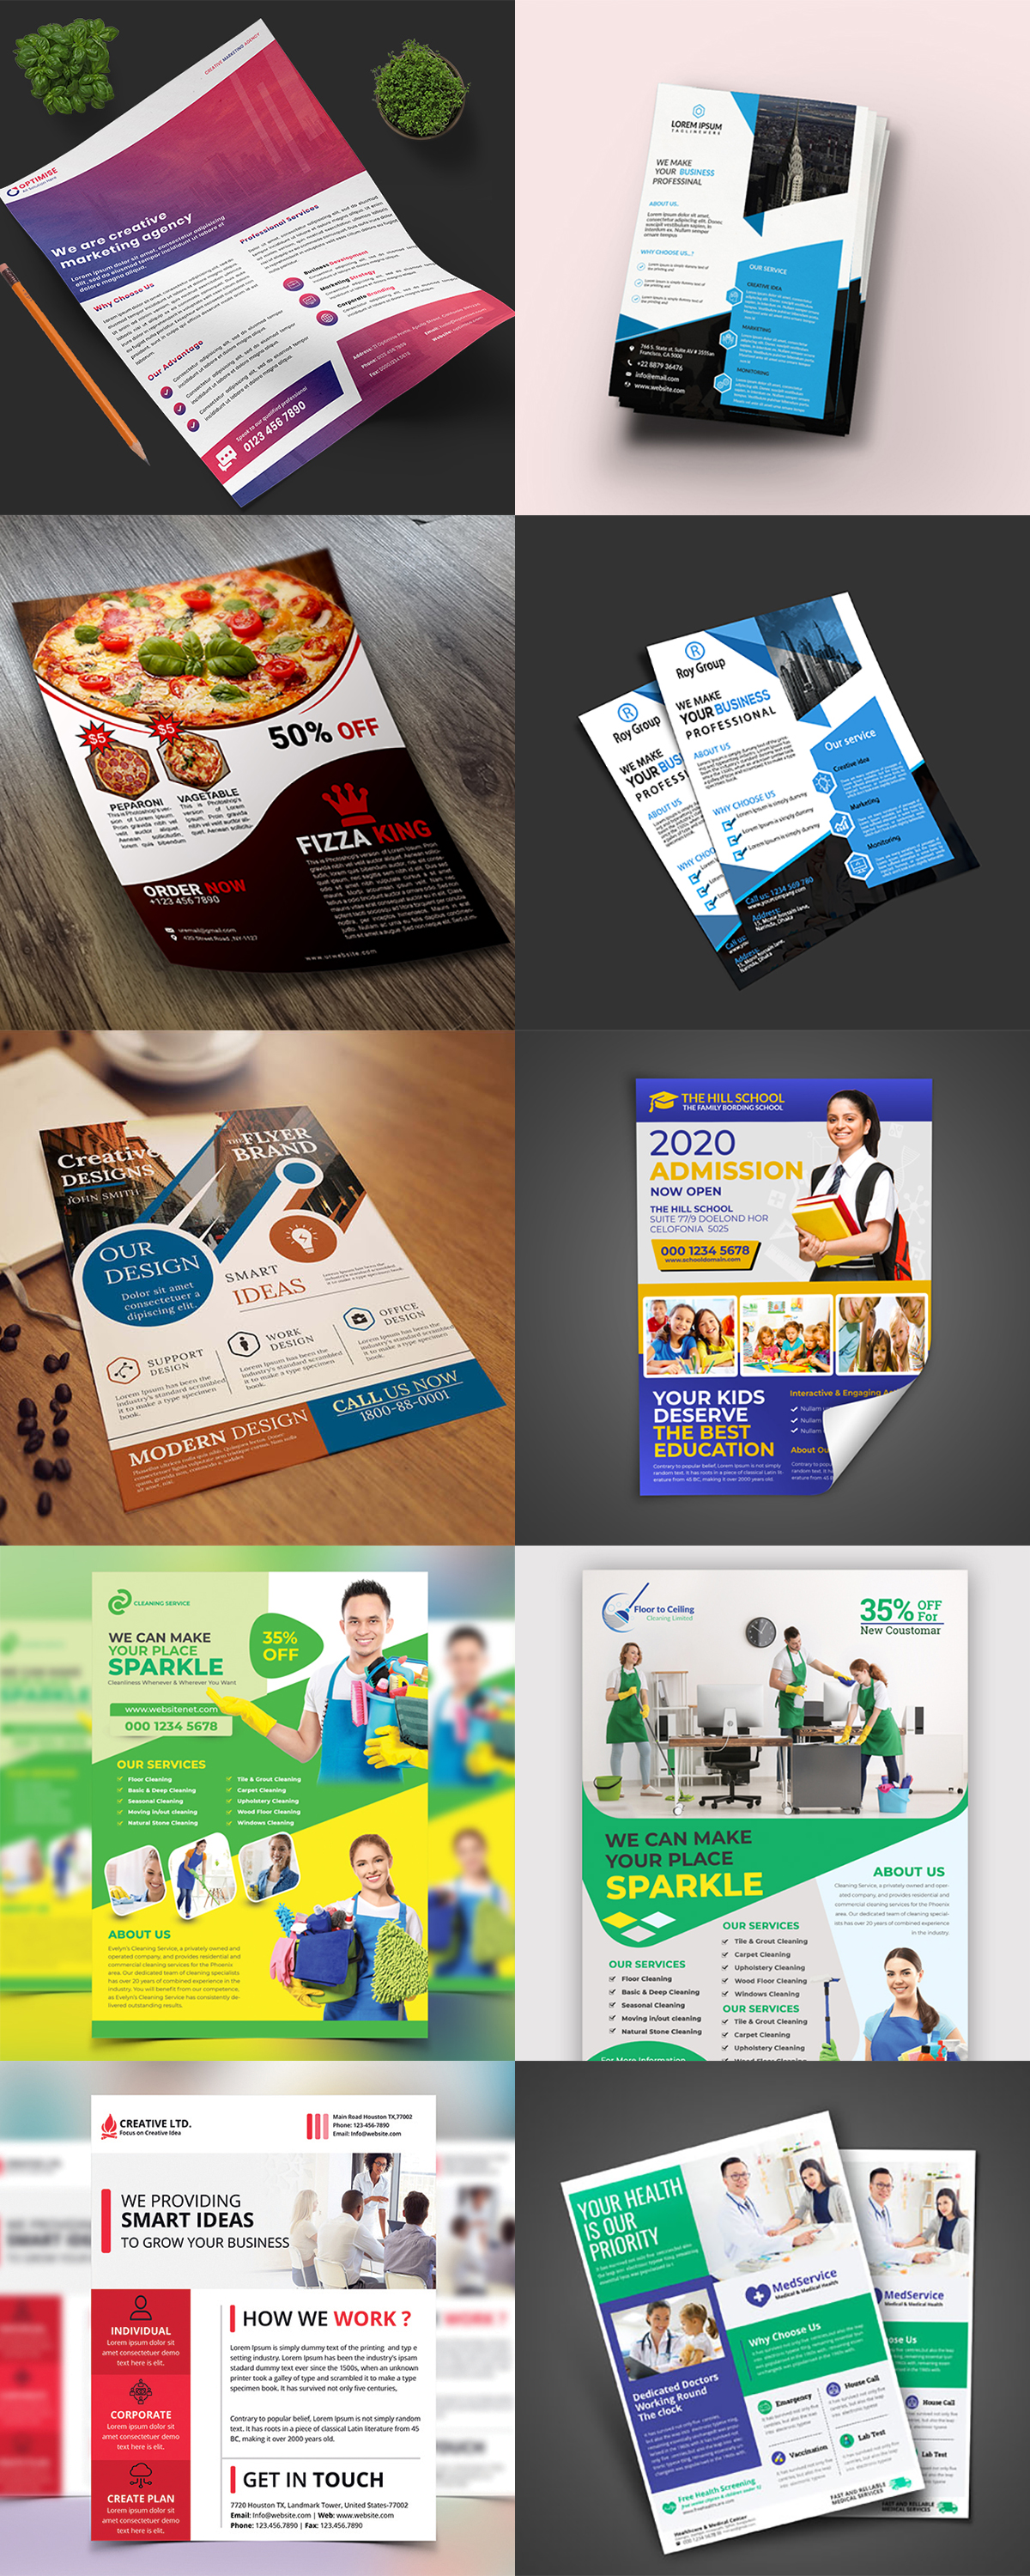 120 Concert Flyer Templates Bundle with Extended License - images 7